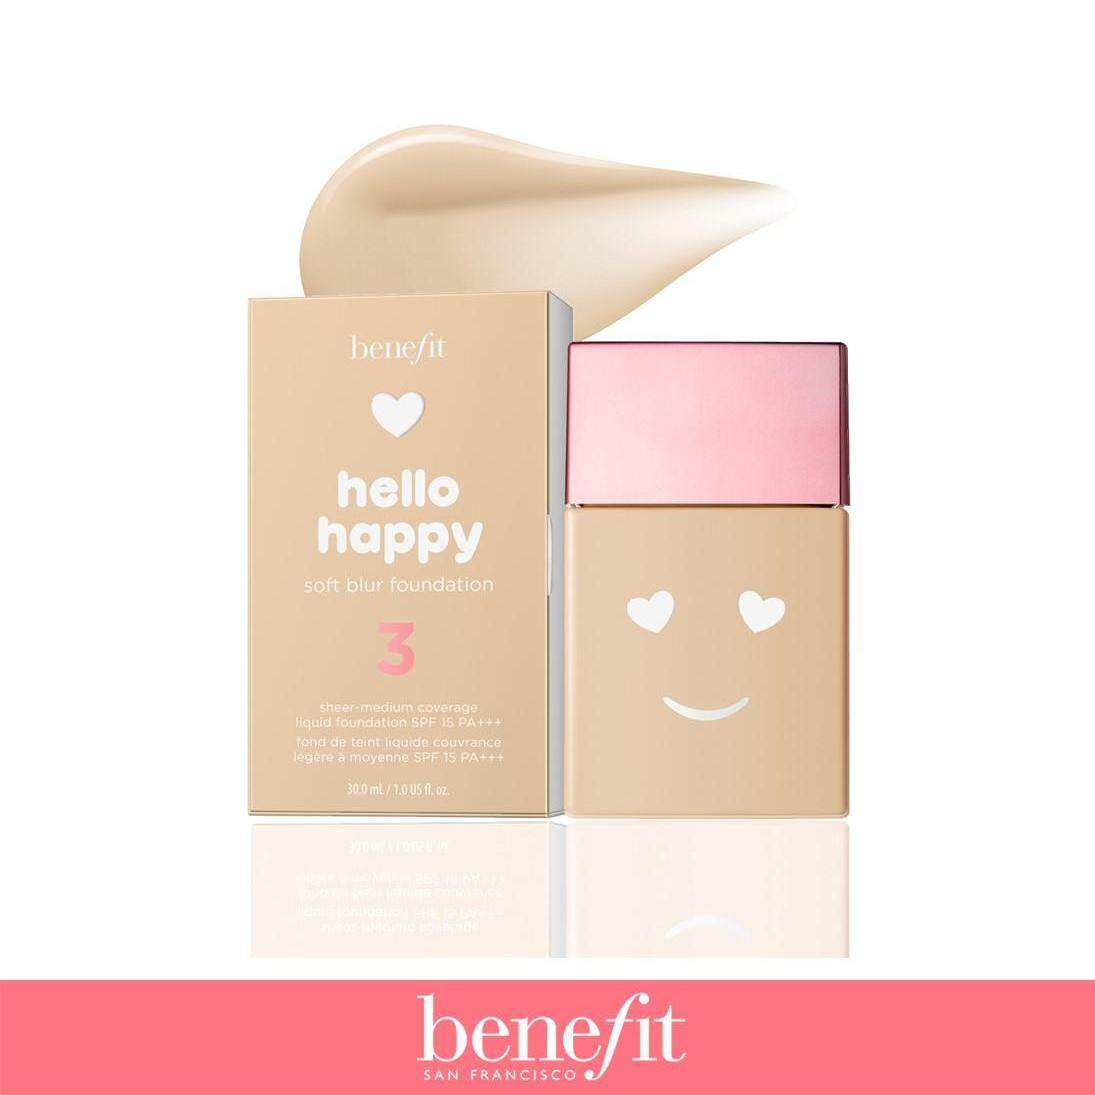 Benefit รองพื้น Hello Happy Soft Blur Foundation no.3